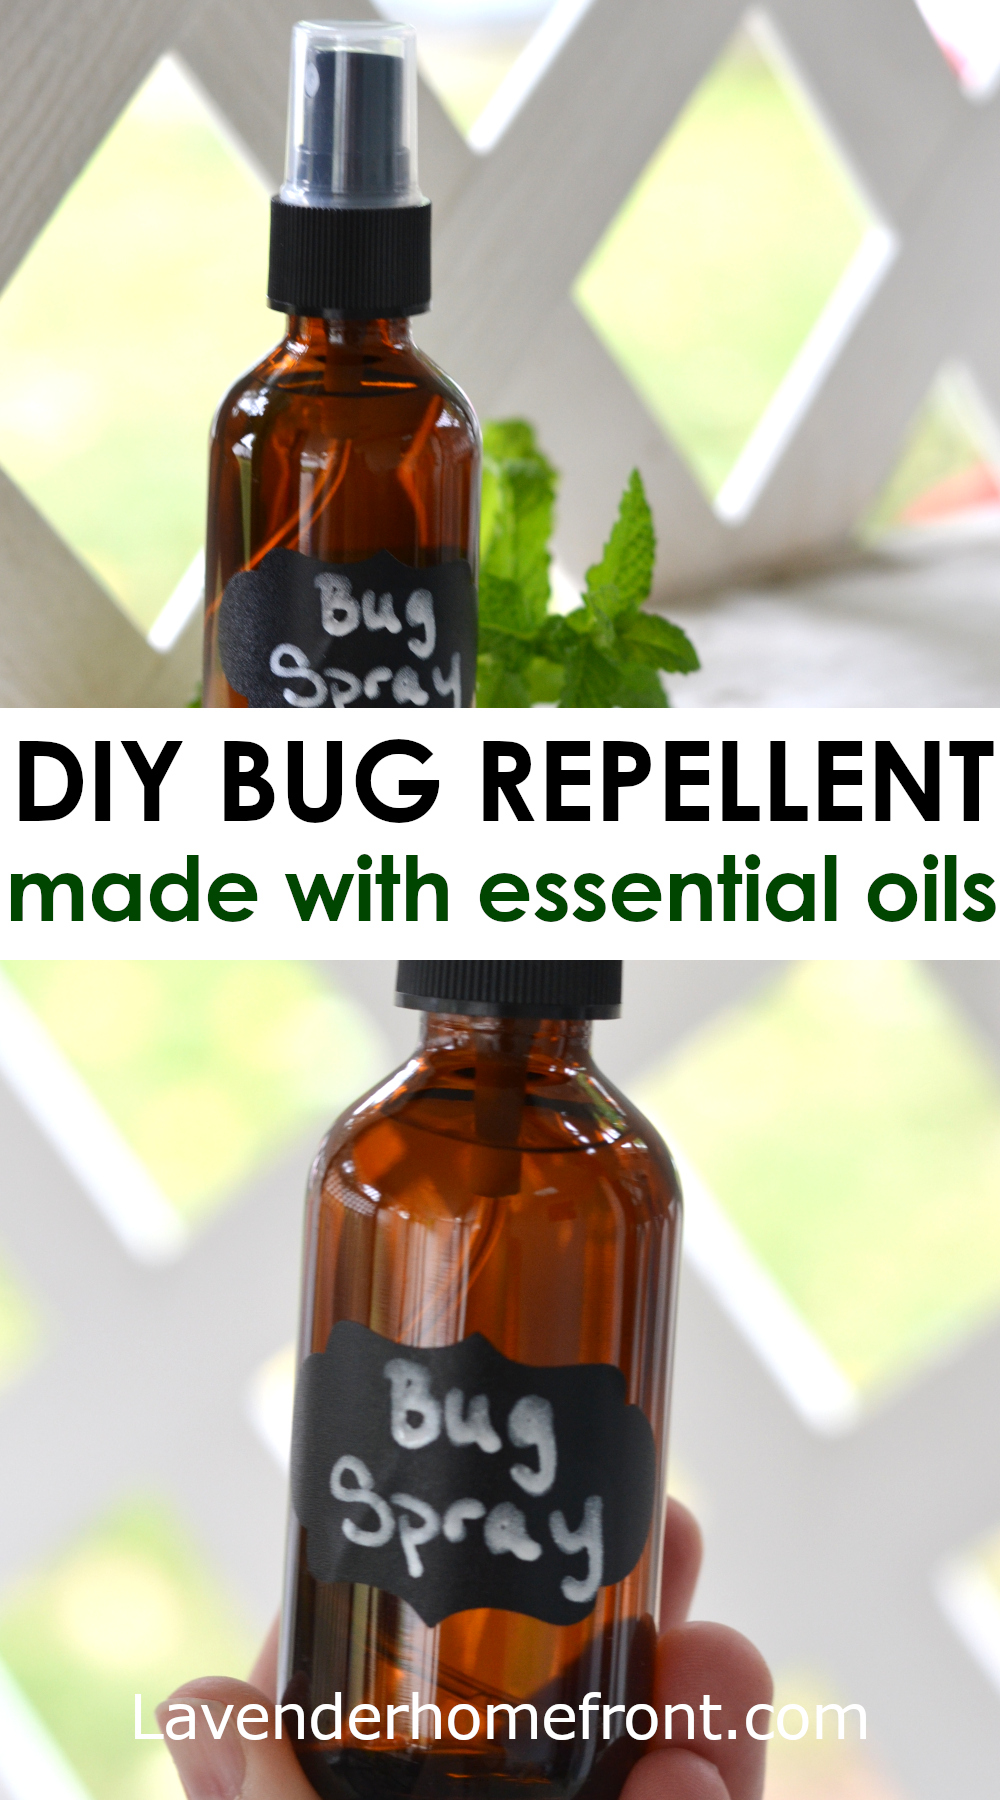 Homemade insect repellent spray pinnable image with text overlay.